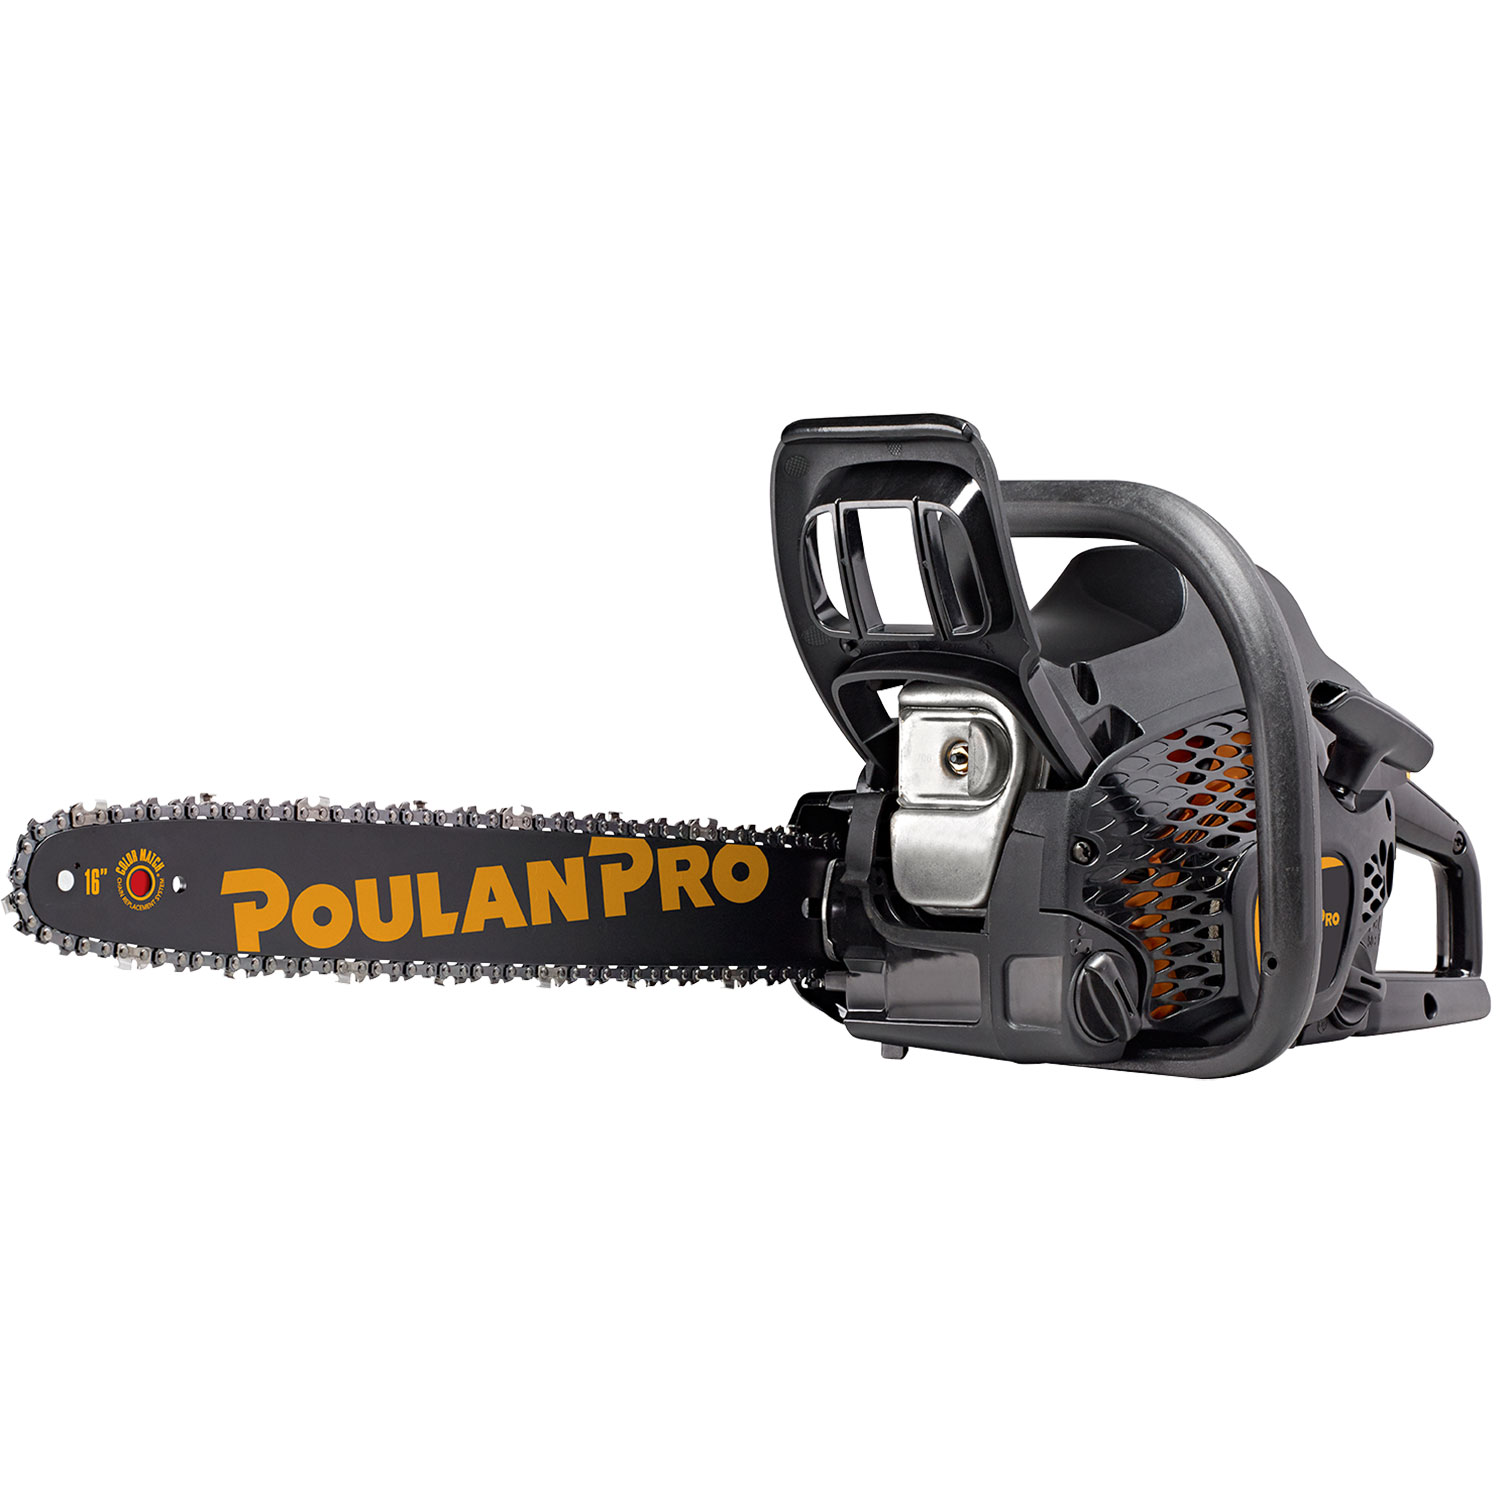 Poulan Pro PR4016 16 Inch 2 Cycle Gas Powered Chainsaw (Certified Refurbished) by Poulan Pro